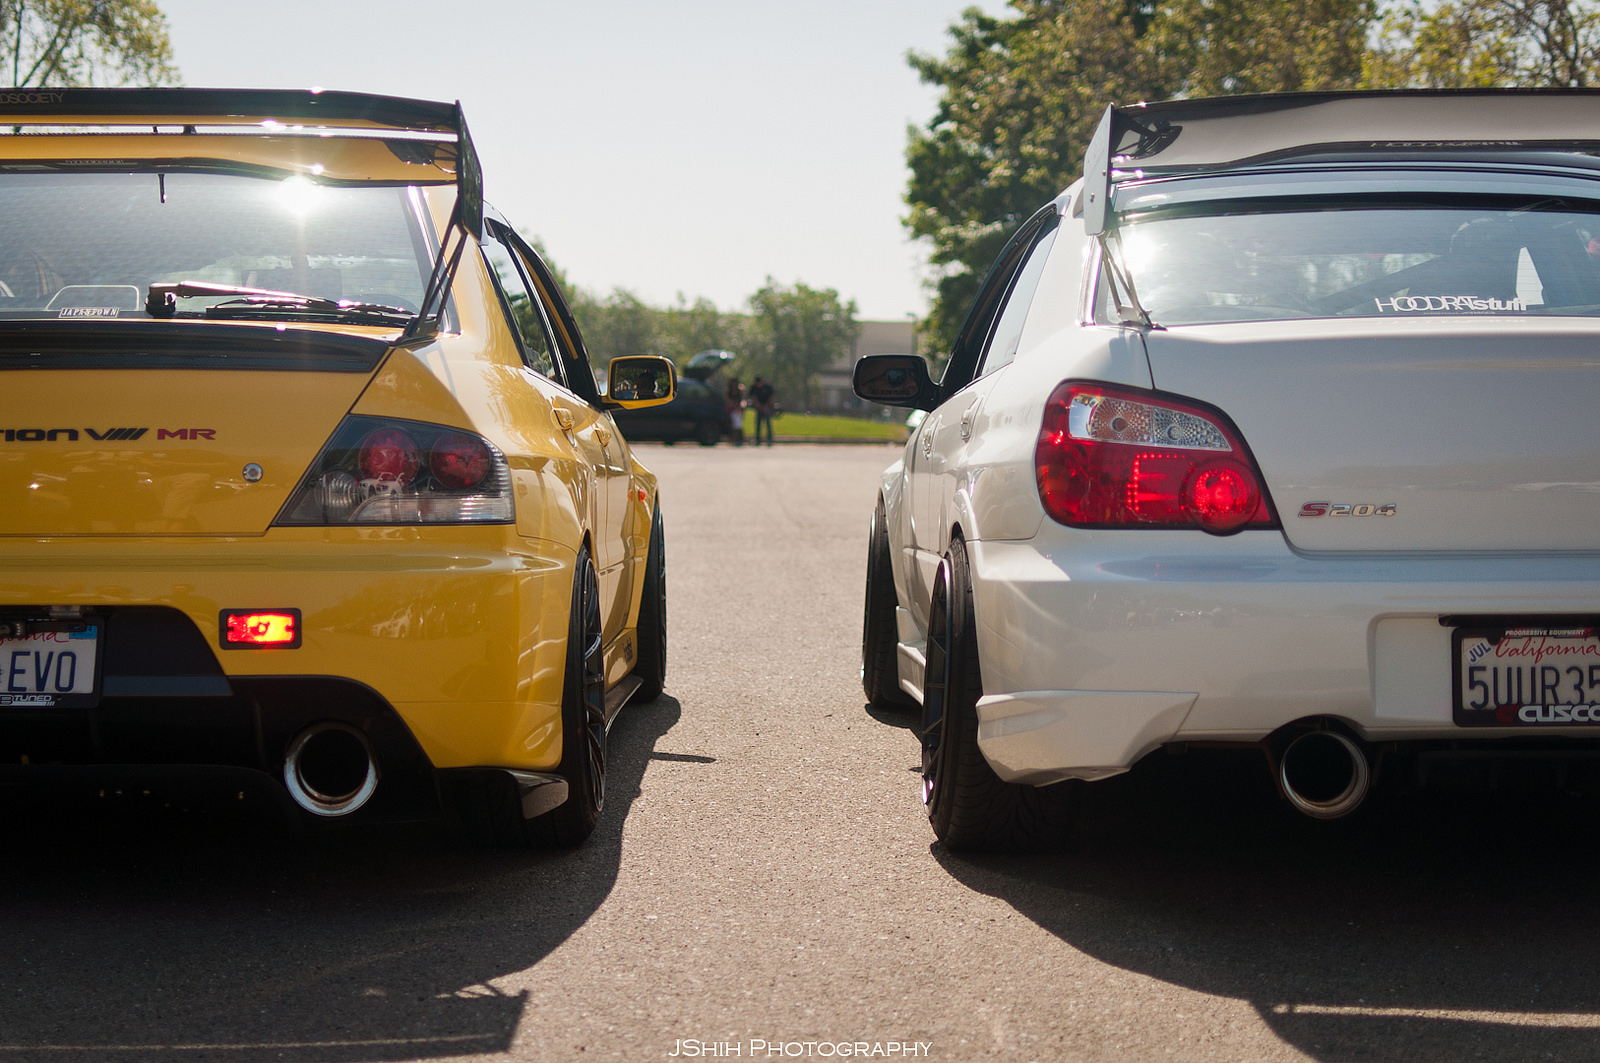 Honda Civic 10 Interieur Evo Or Sti? | Stancenation™ // Form > Function